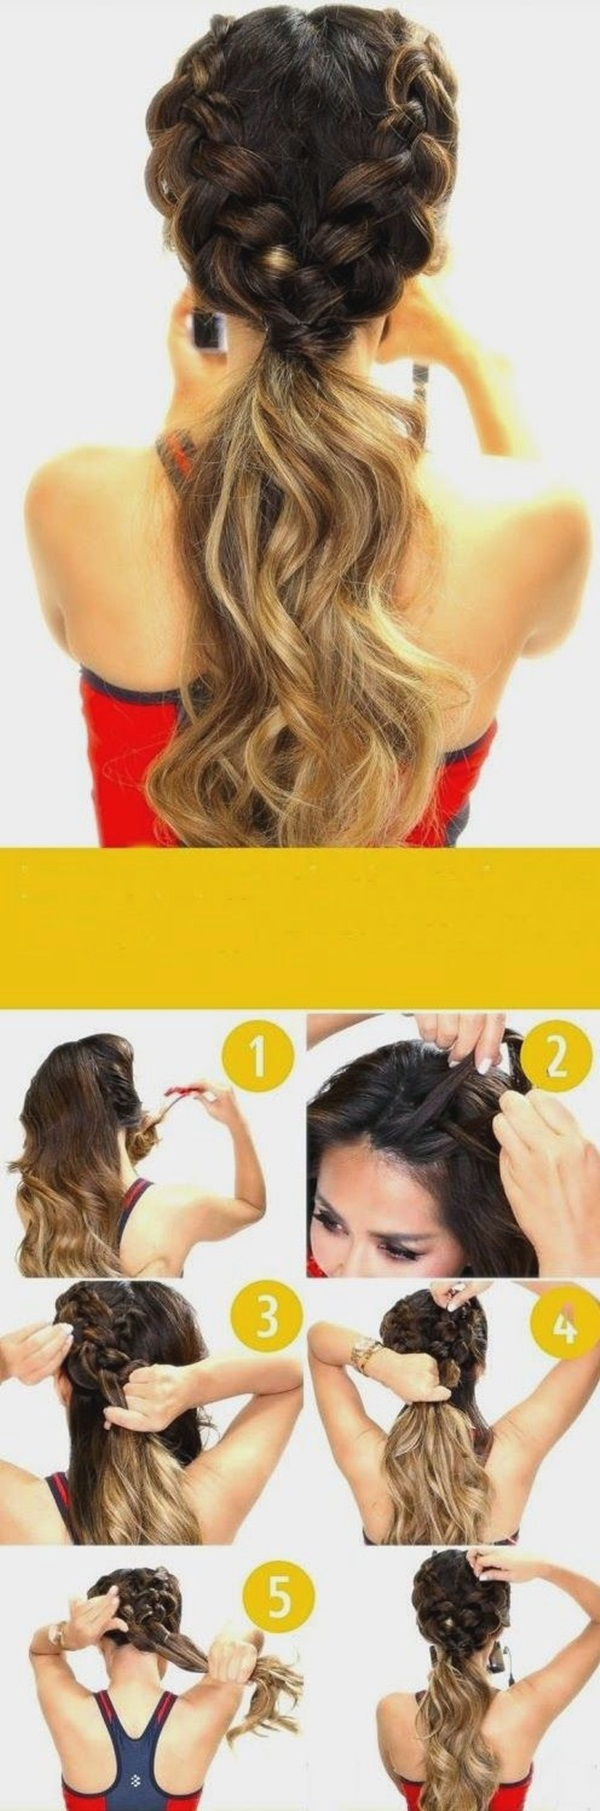 Easy Hairstyles For School (4)